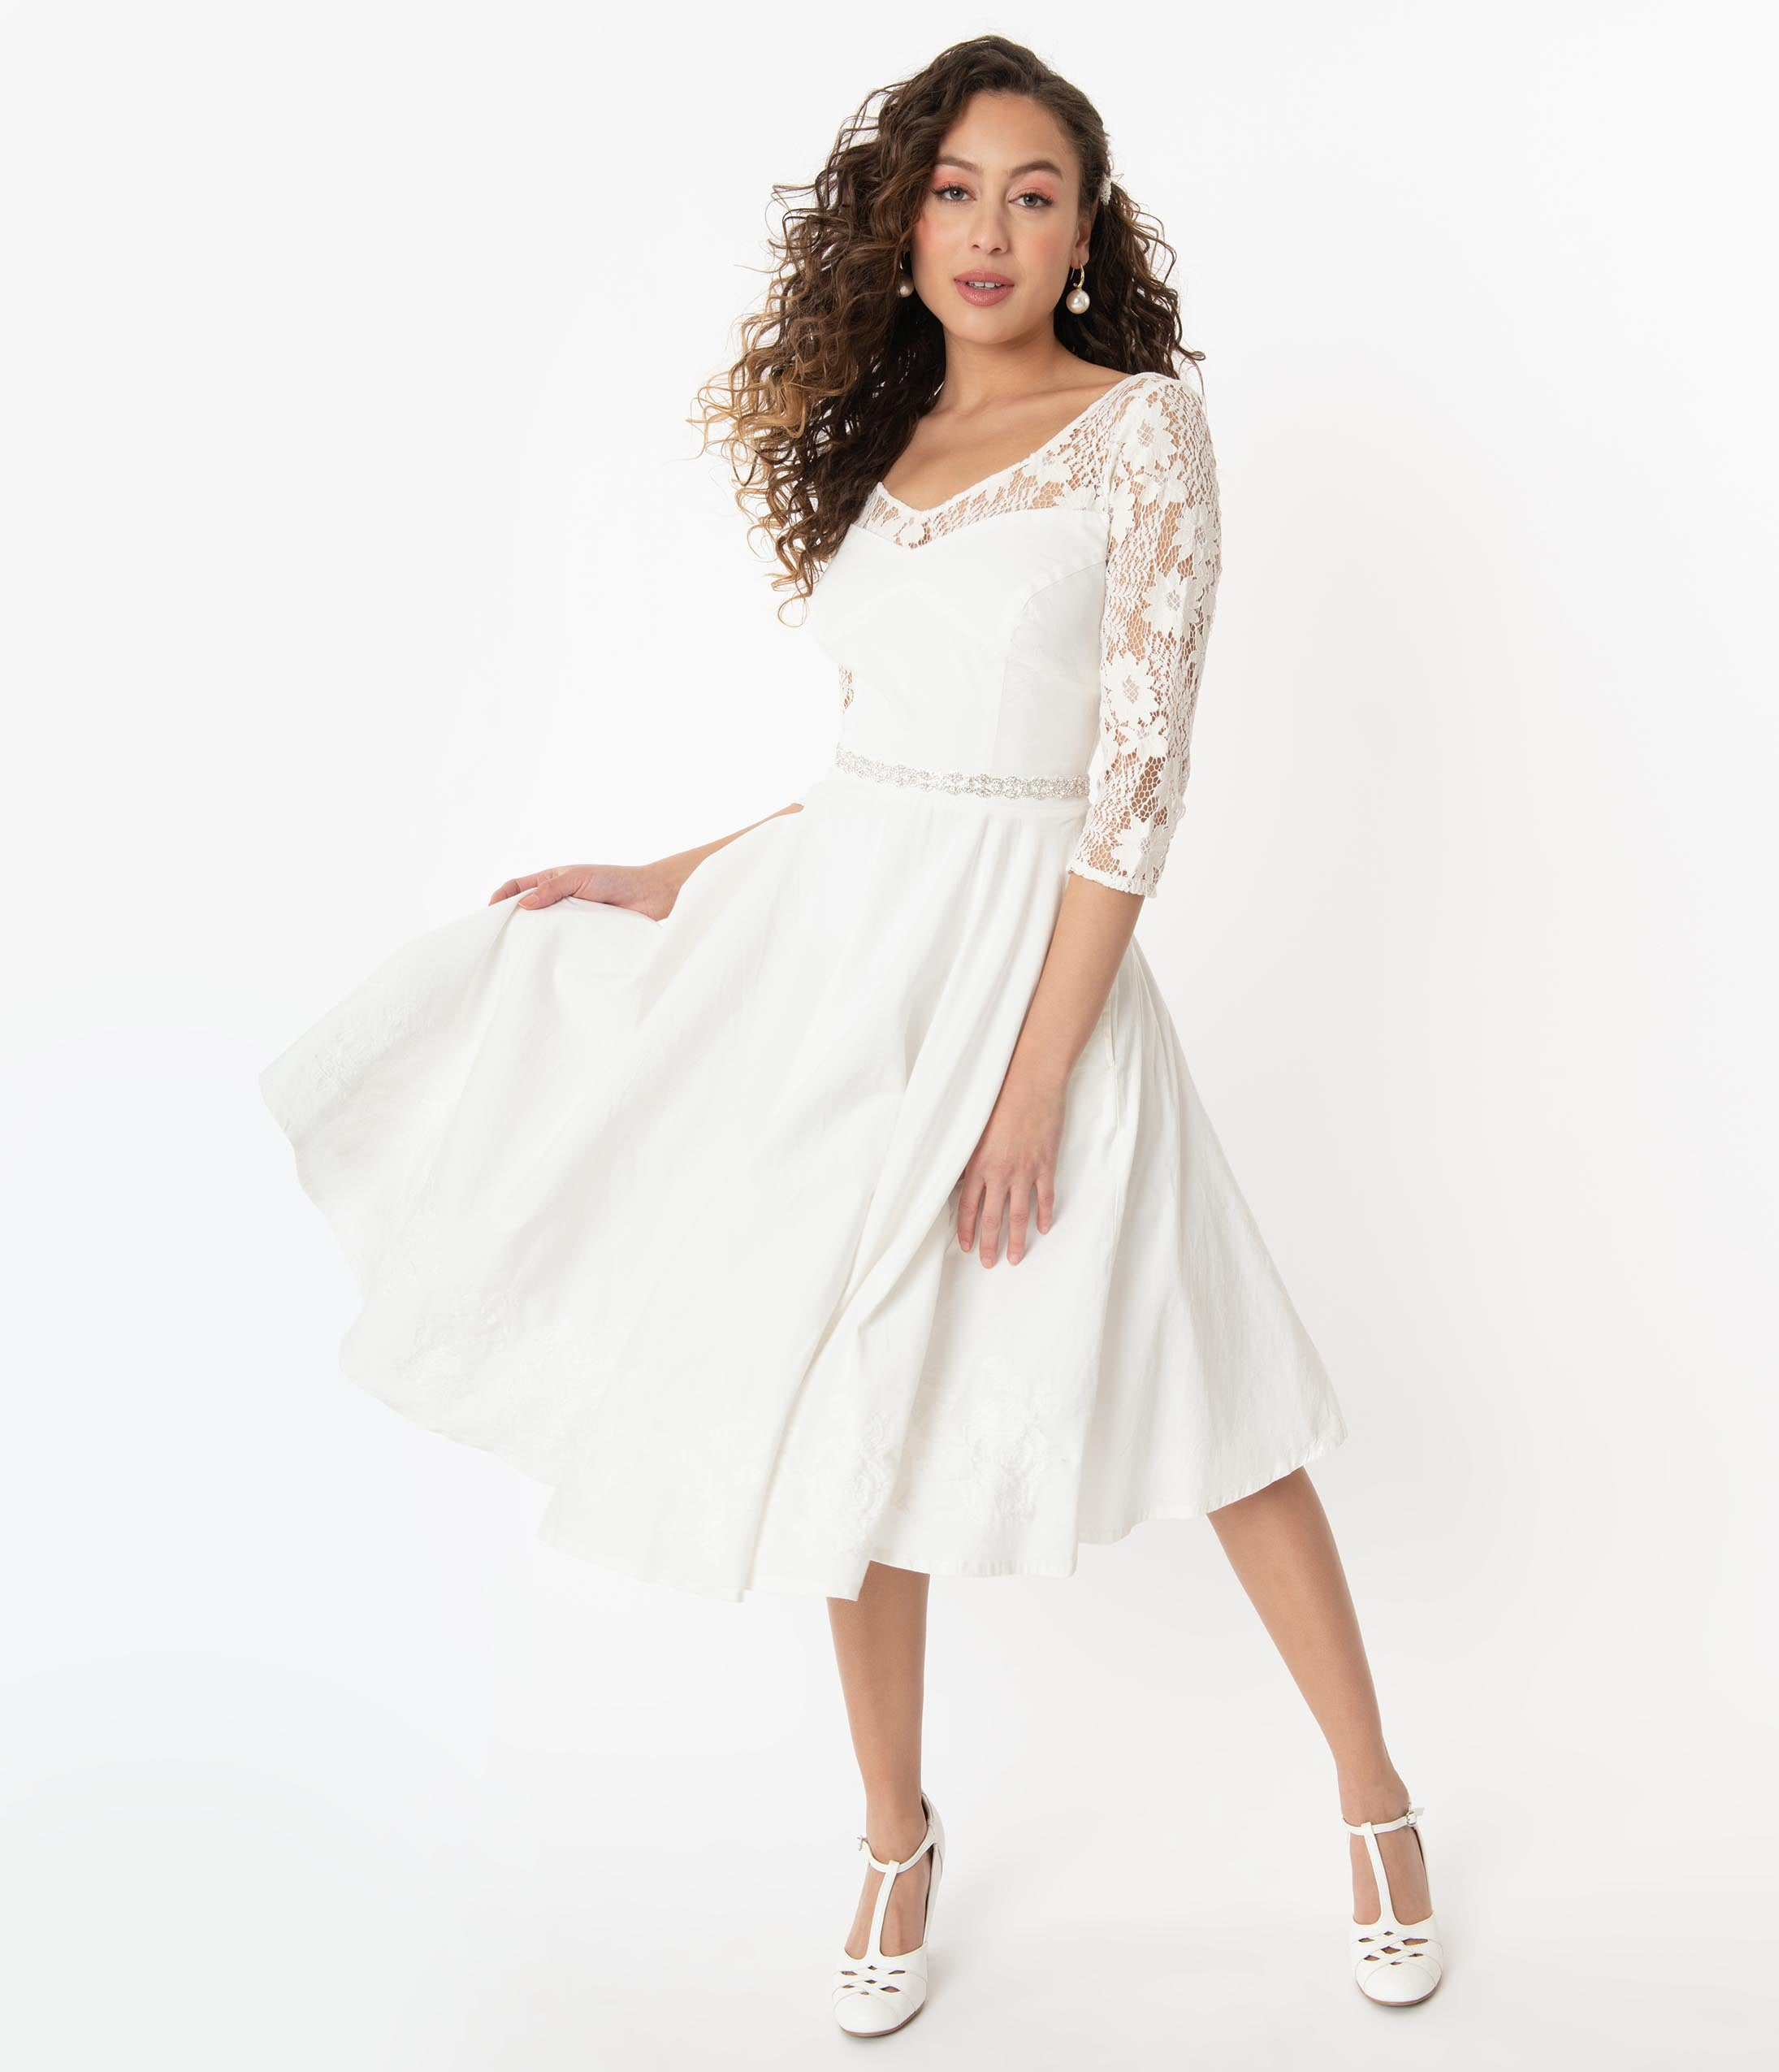 What Did Women Wear in the 1950s? 1950s Fashion Guide 1950S Ivory Lace Sky Bridal Swing Dress $92.00 AT vintagedancer.com